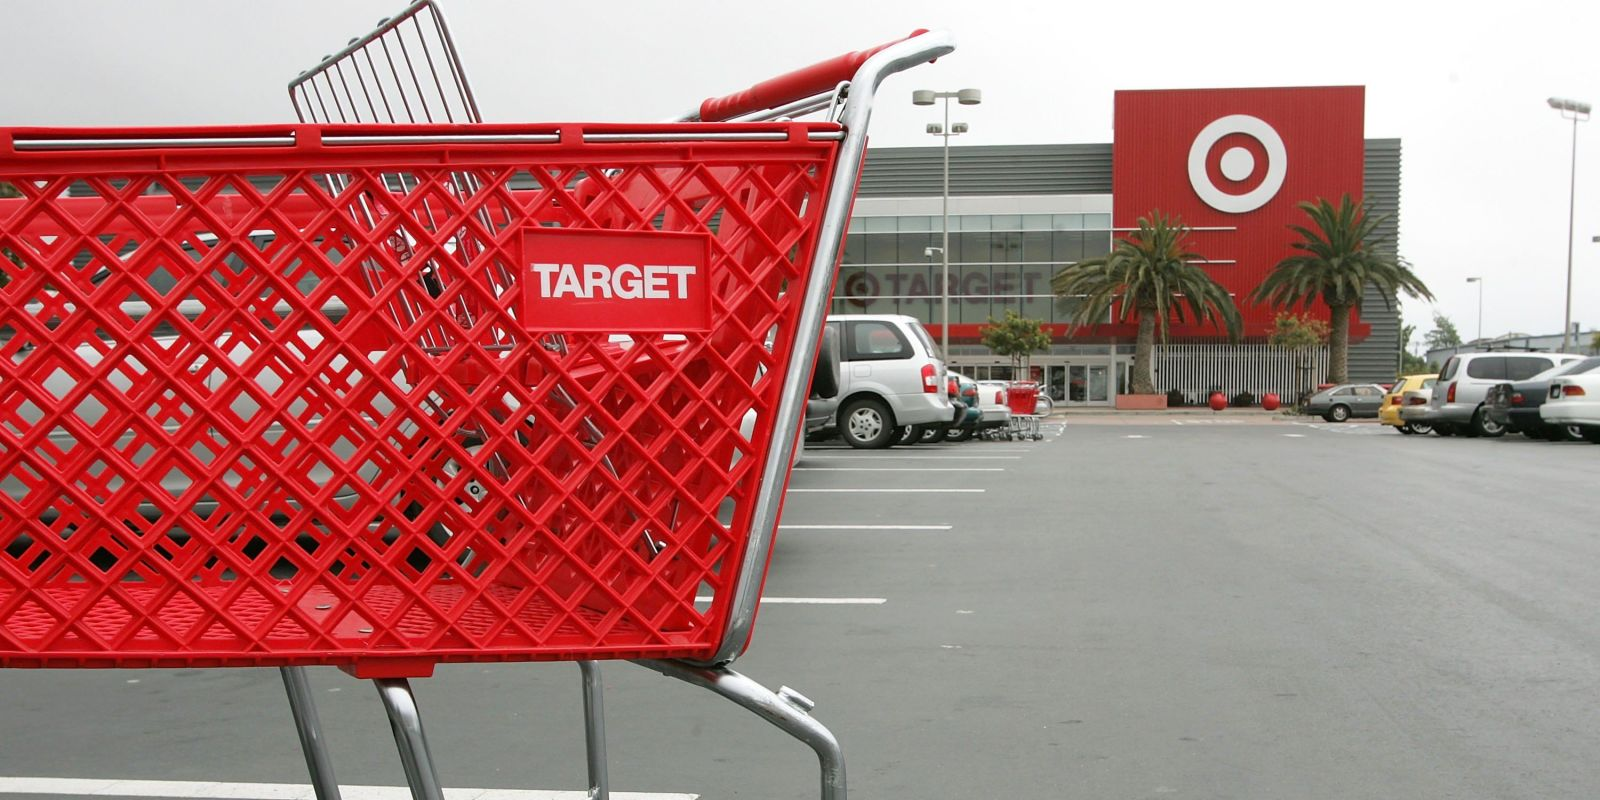 best stores for home decorating and furnishings decor sales target store and shopping cart